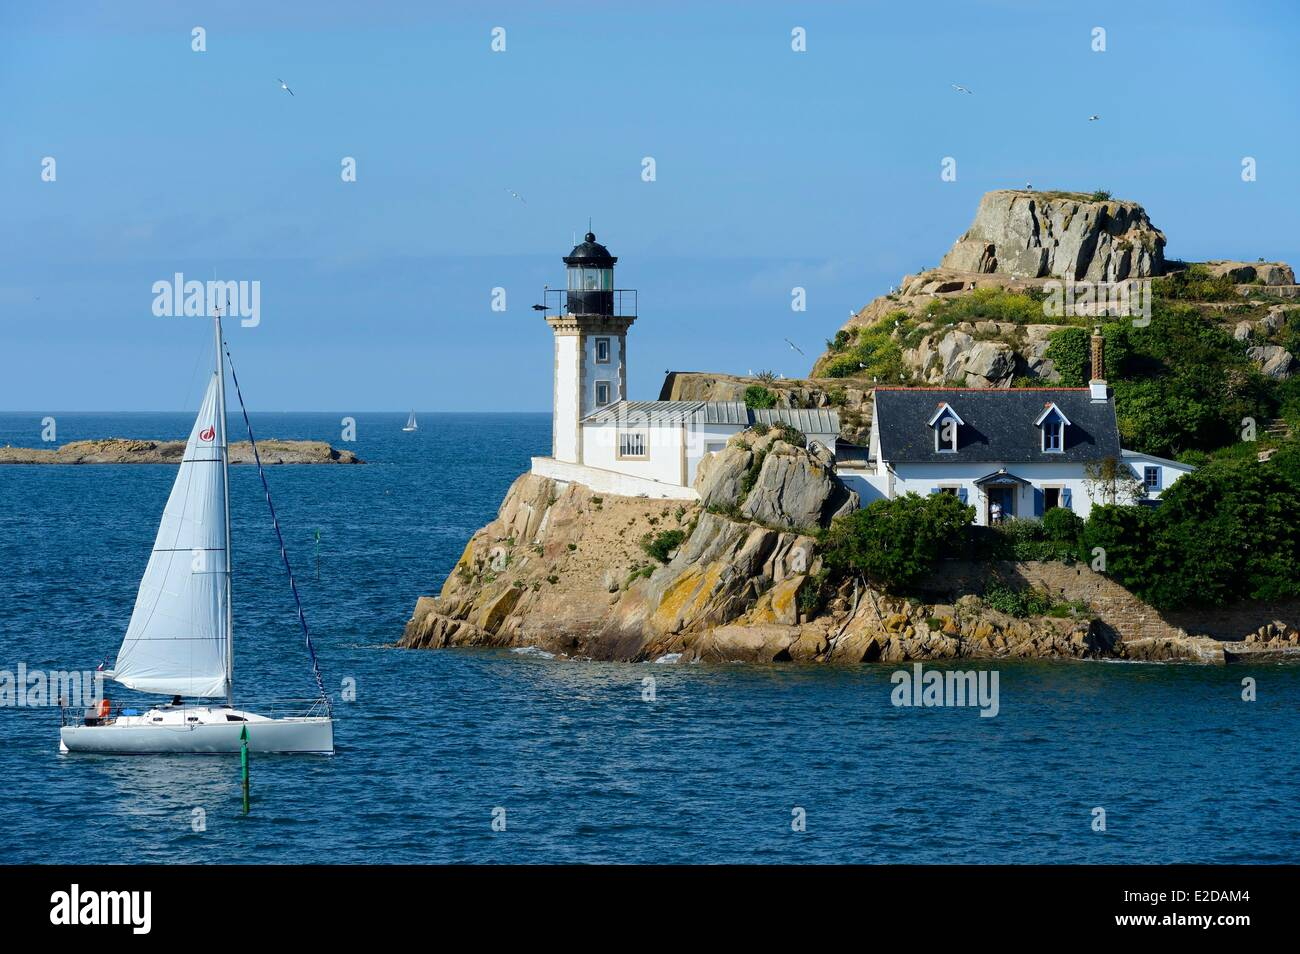 France Finistere Morlaix bay Carantec lighthouse of Louet island (also a guest house in summer) - Stock Image